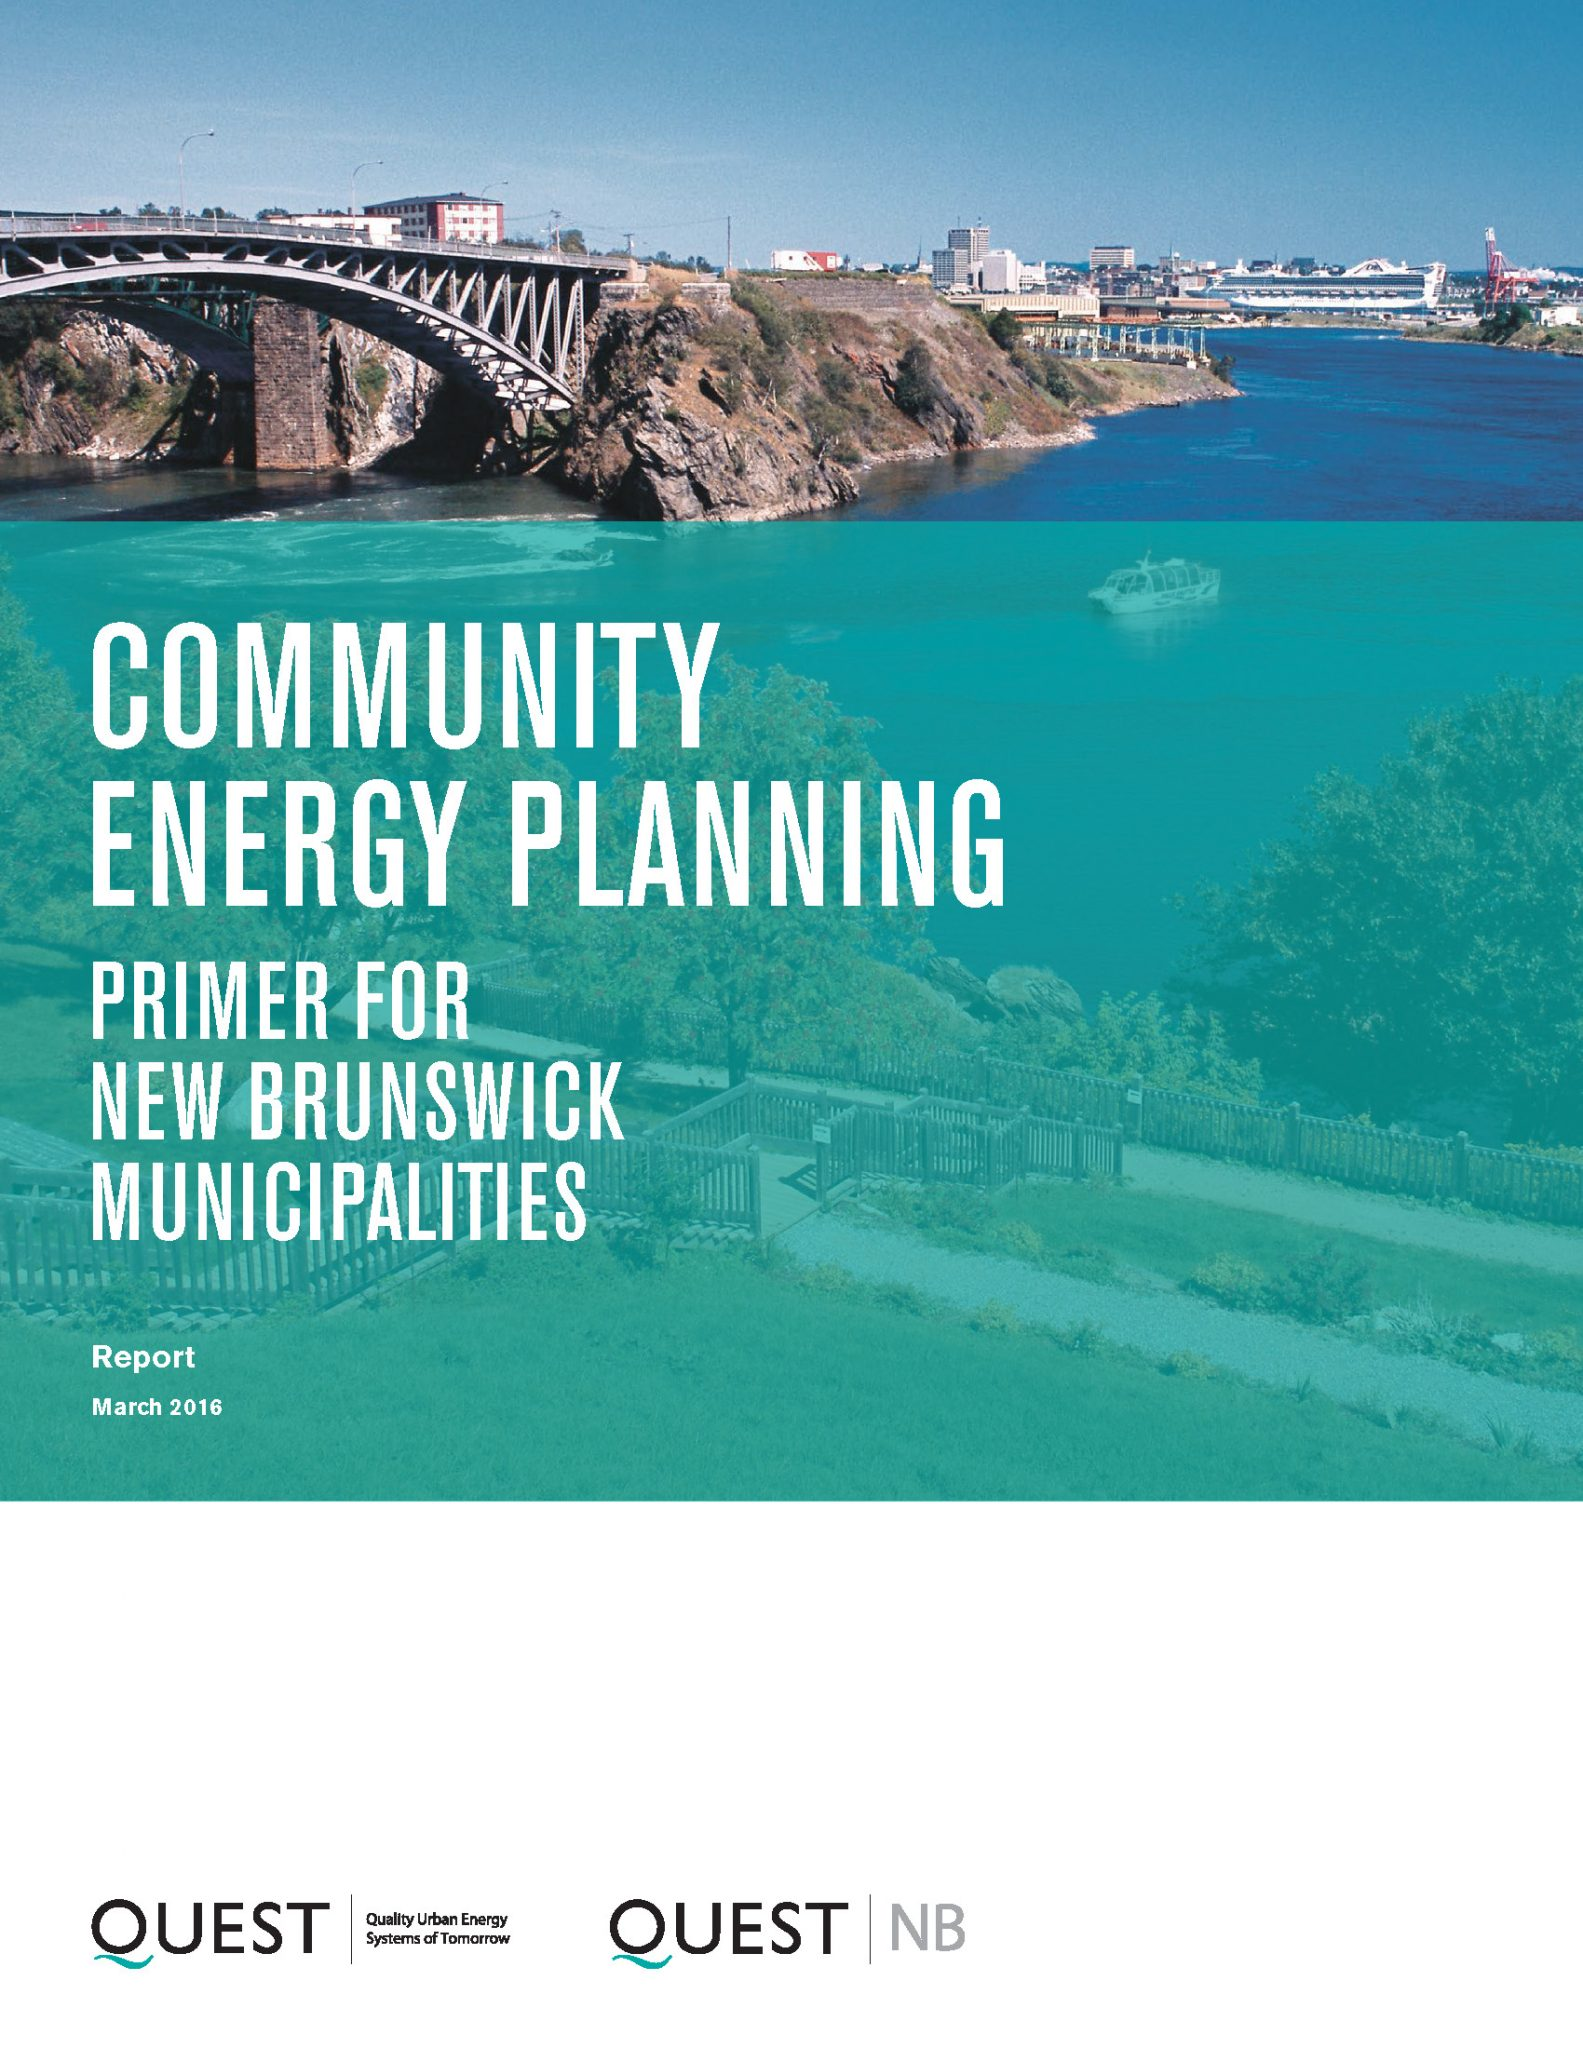 Community Energy Planning: Primer for New Brunswick Municipalities